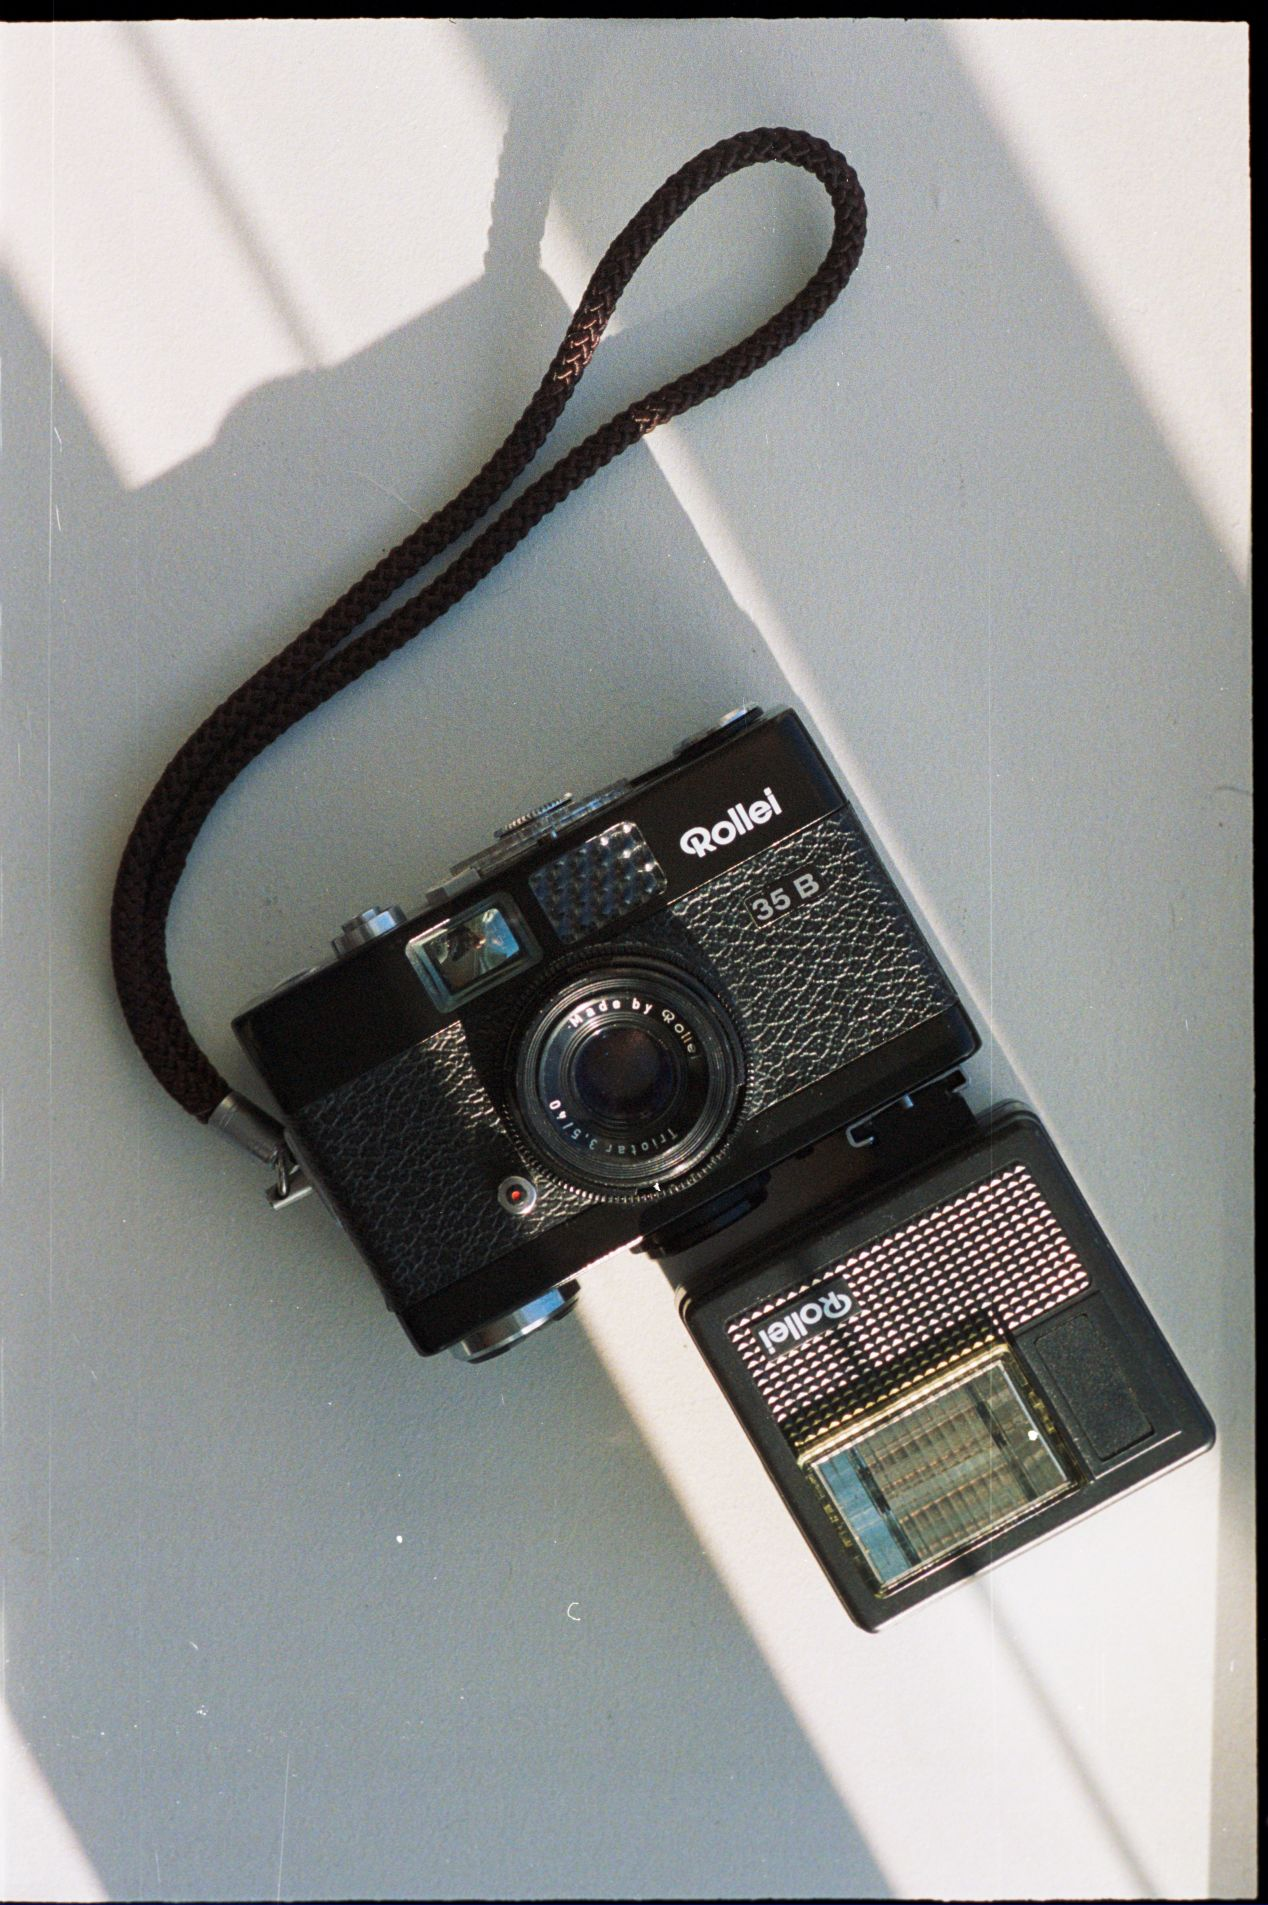 Rollei 35b with a flash.